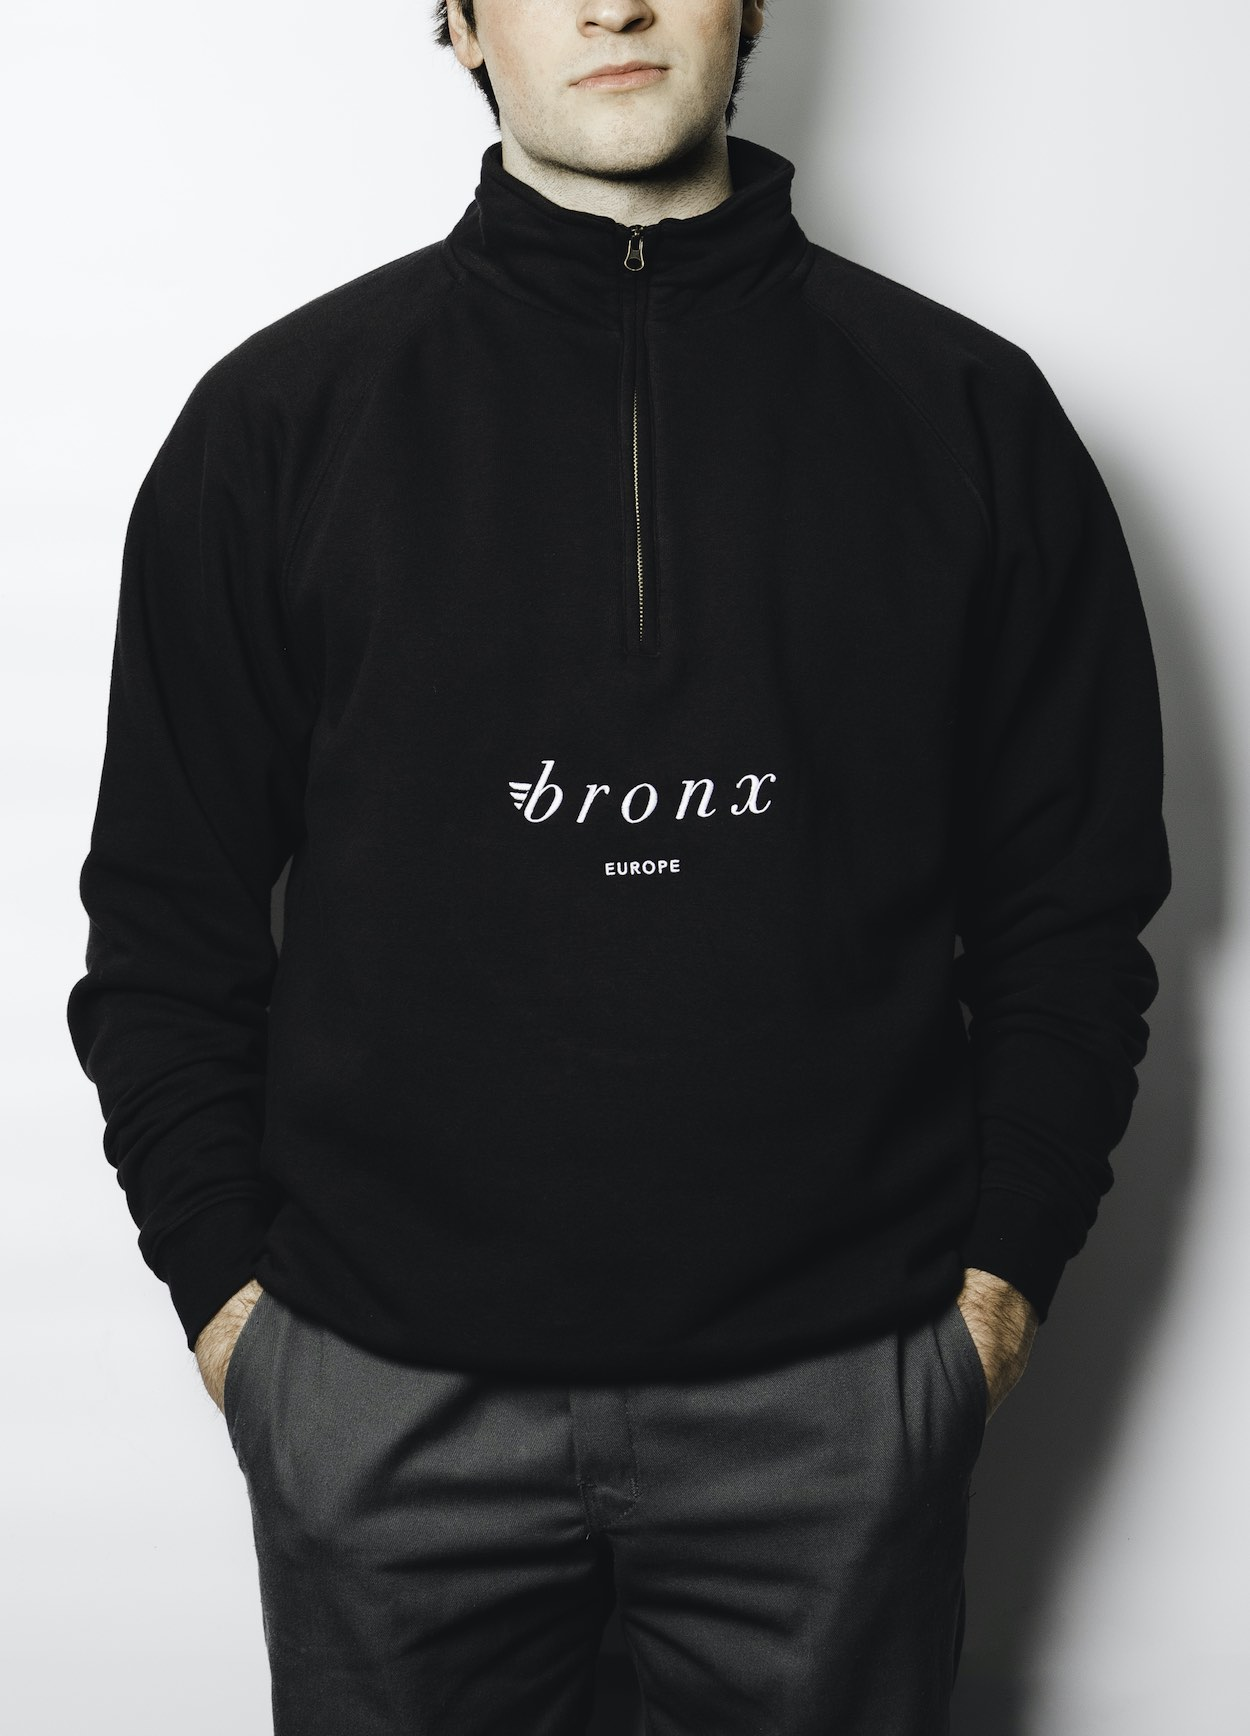 Bronx, Zip-Neck Sweater, Europe, black